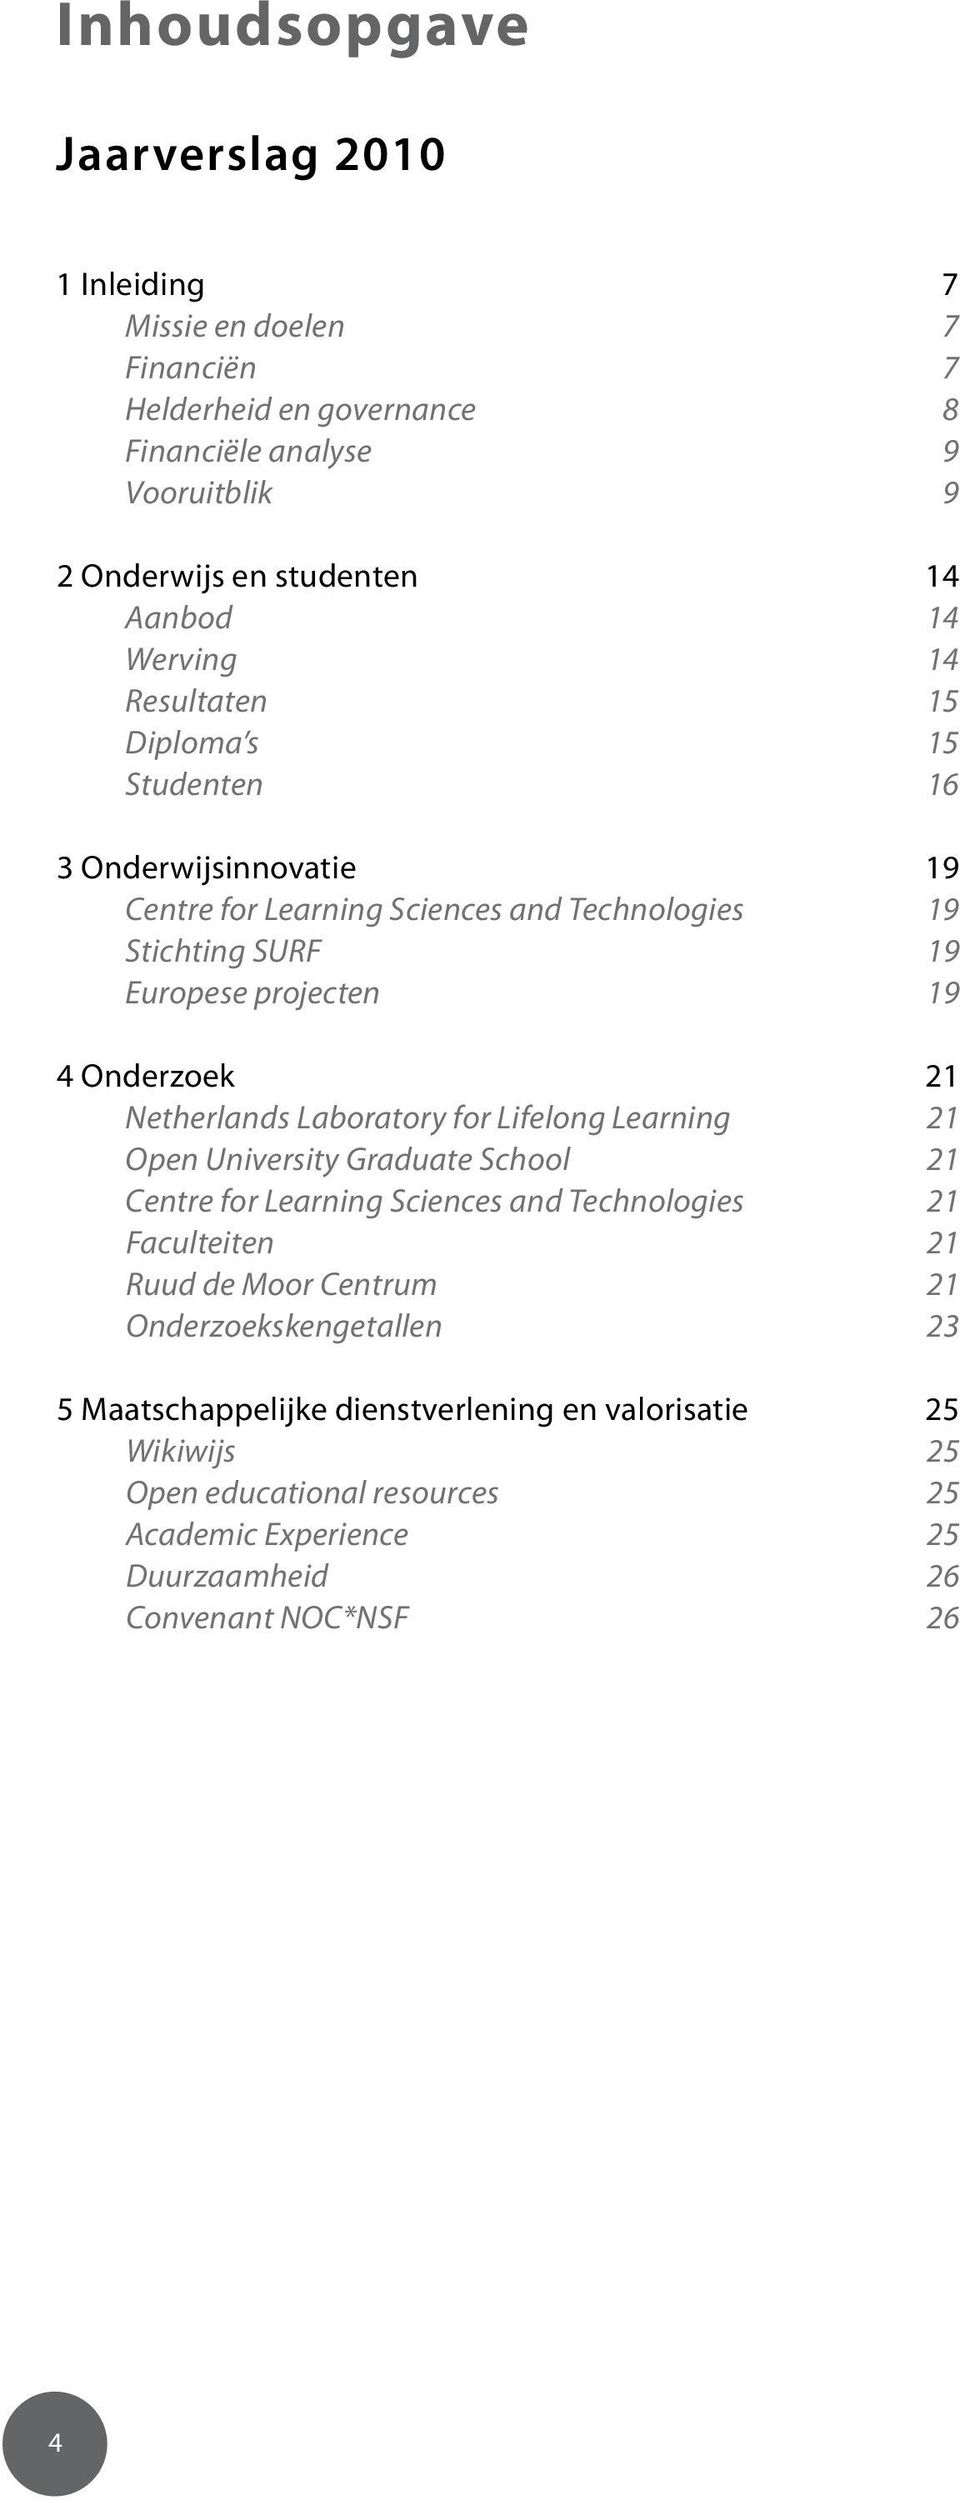 21 Netherlands Laboratory for Lifelong Learning 21 Open University Graduate School 21 Centre for Learning Sciences and Technologies 21 Faculteiten 21 Ruud de Moor Centrum 21